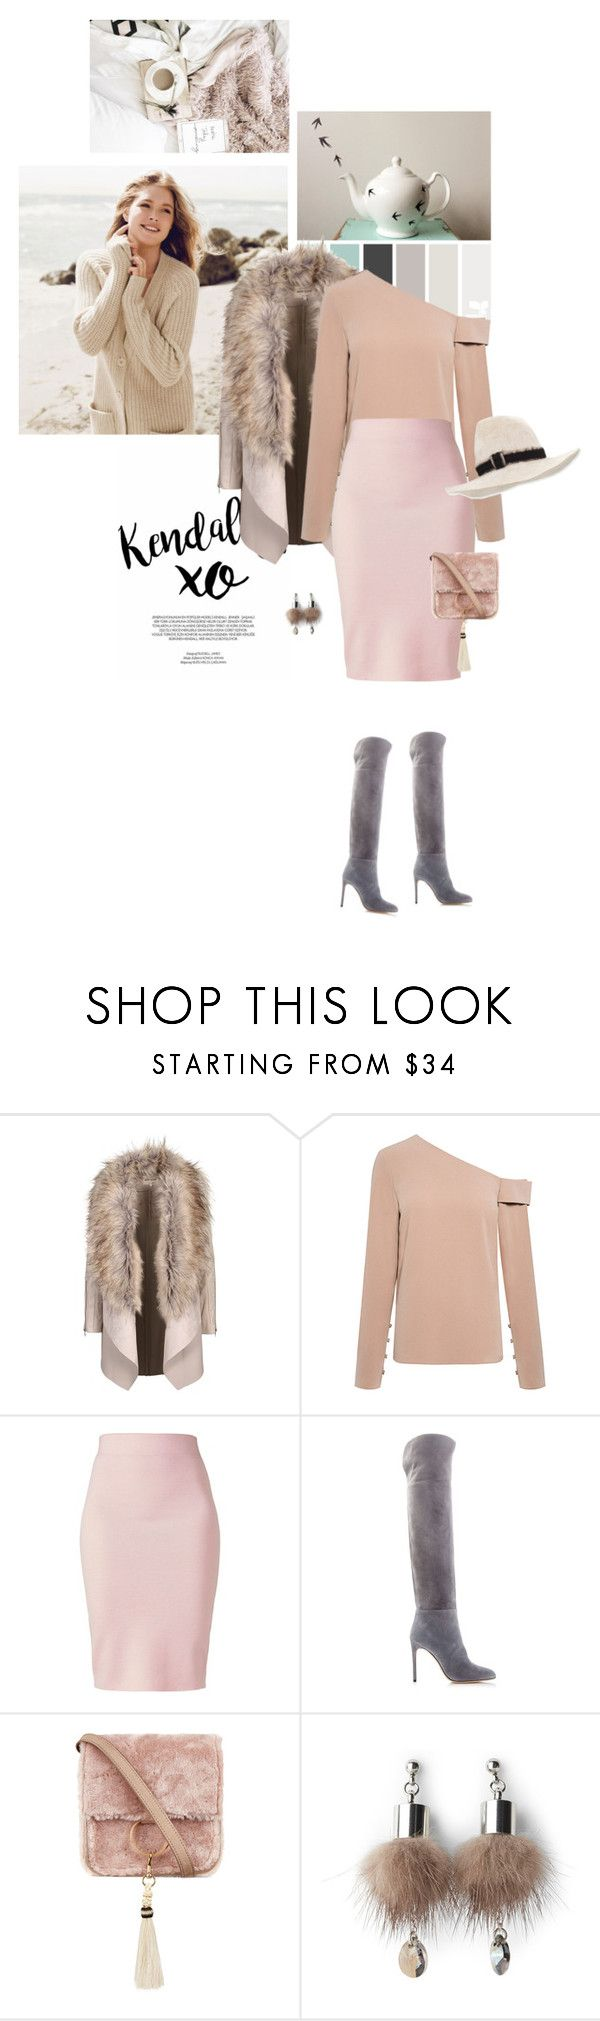 """Untitled #846"" by girl-with-ideas ❤ liked on Polyvore featuring xO Design, Repeat Cashmere, TIBI, Winser London, Sergio Rossi, Brother Vellies, Simons and Gigi Burris Millinery"